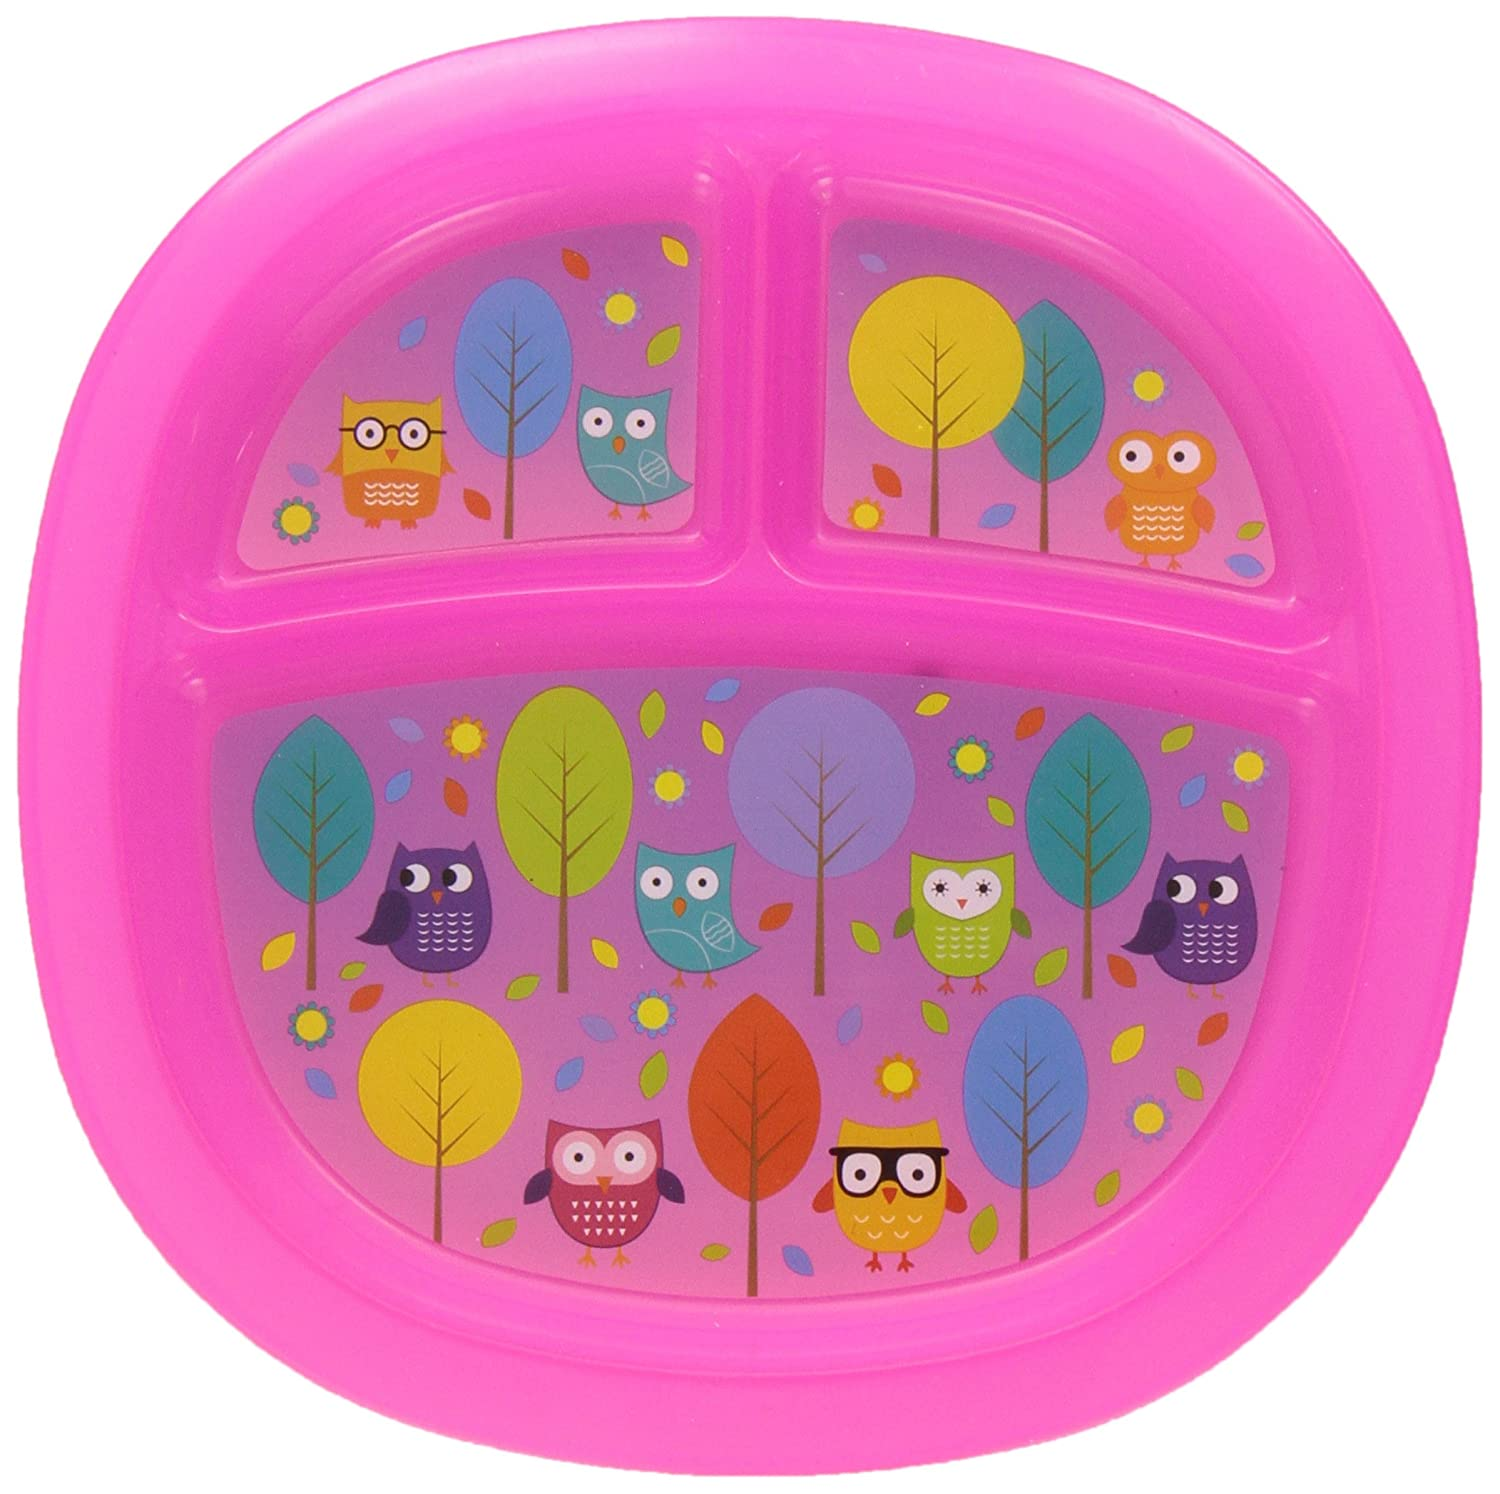 Munchkin Toddler Plate Multi colors may vary